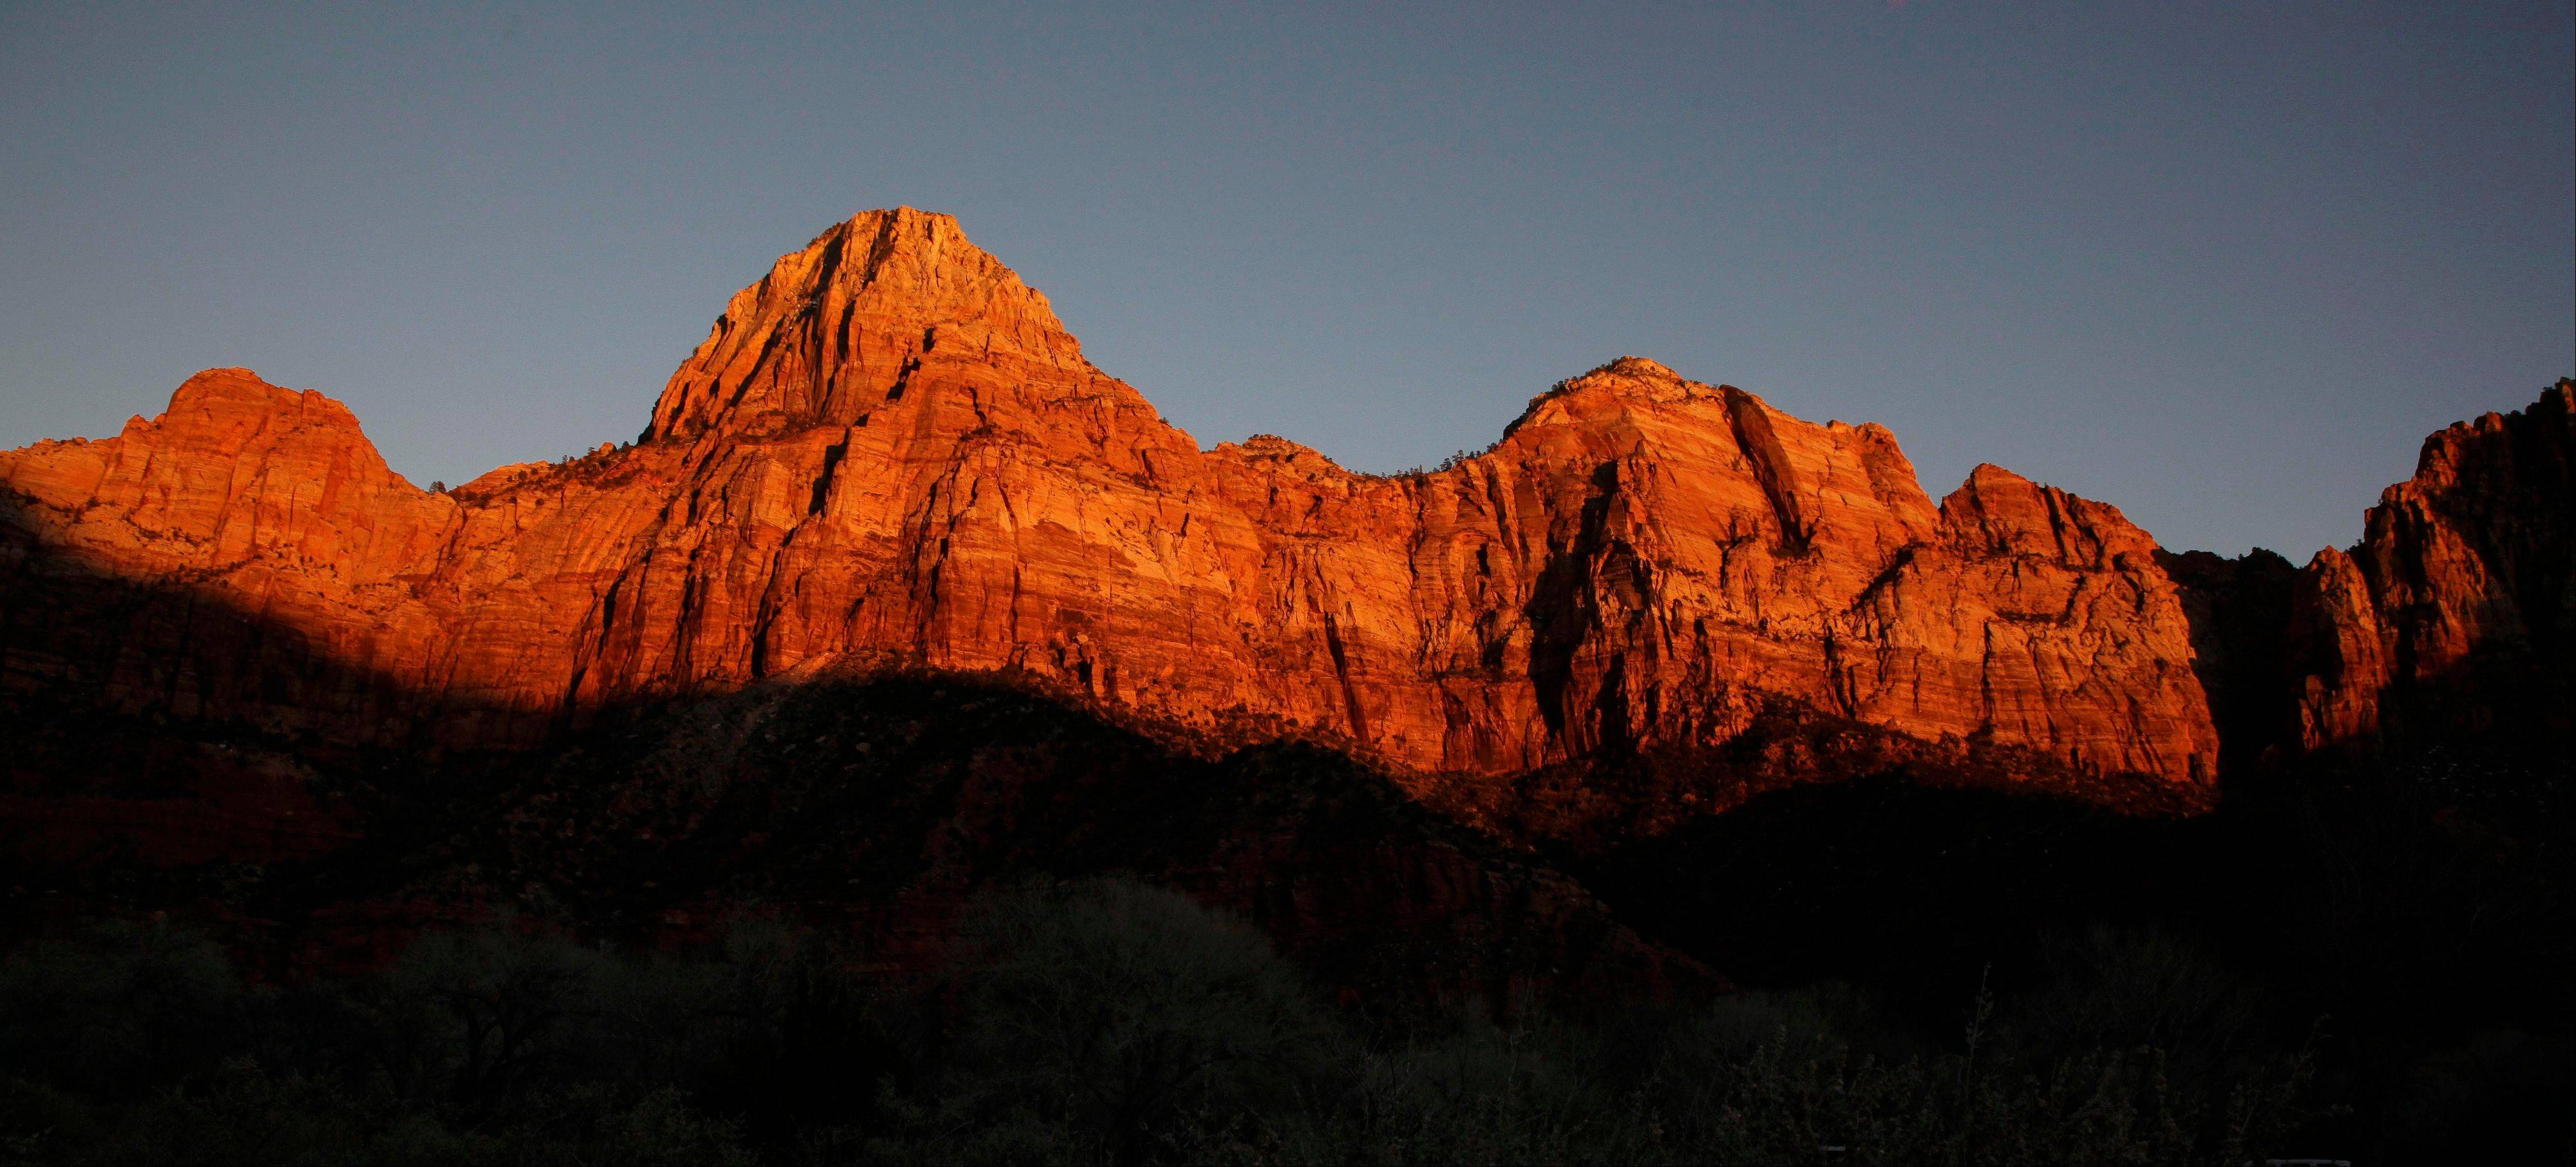 Shadows creep up on sandstone cliffs glowing red as the sun sets on Zion National Park near Springdale, Utah.